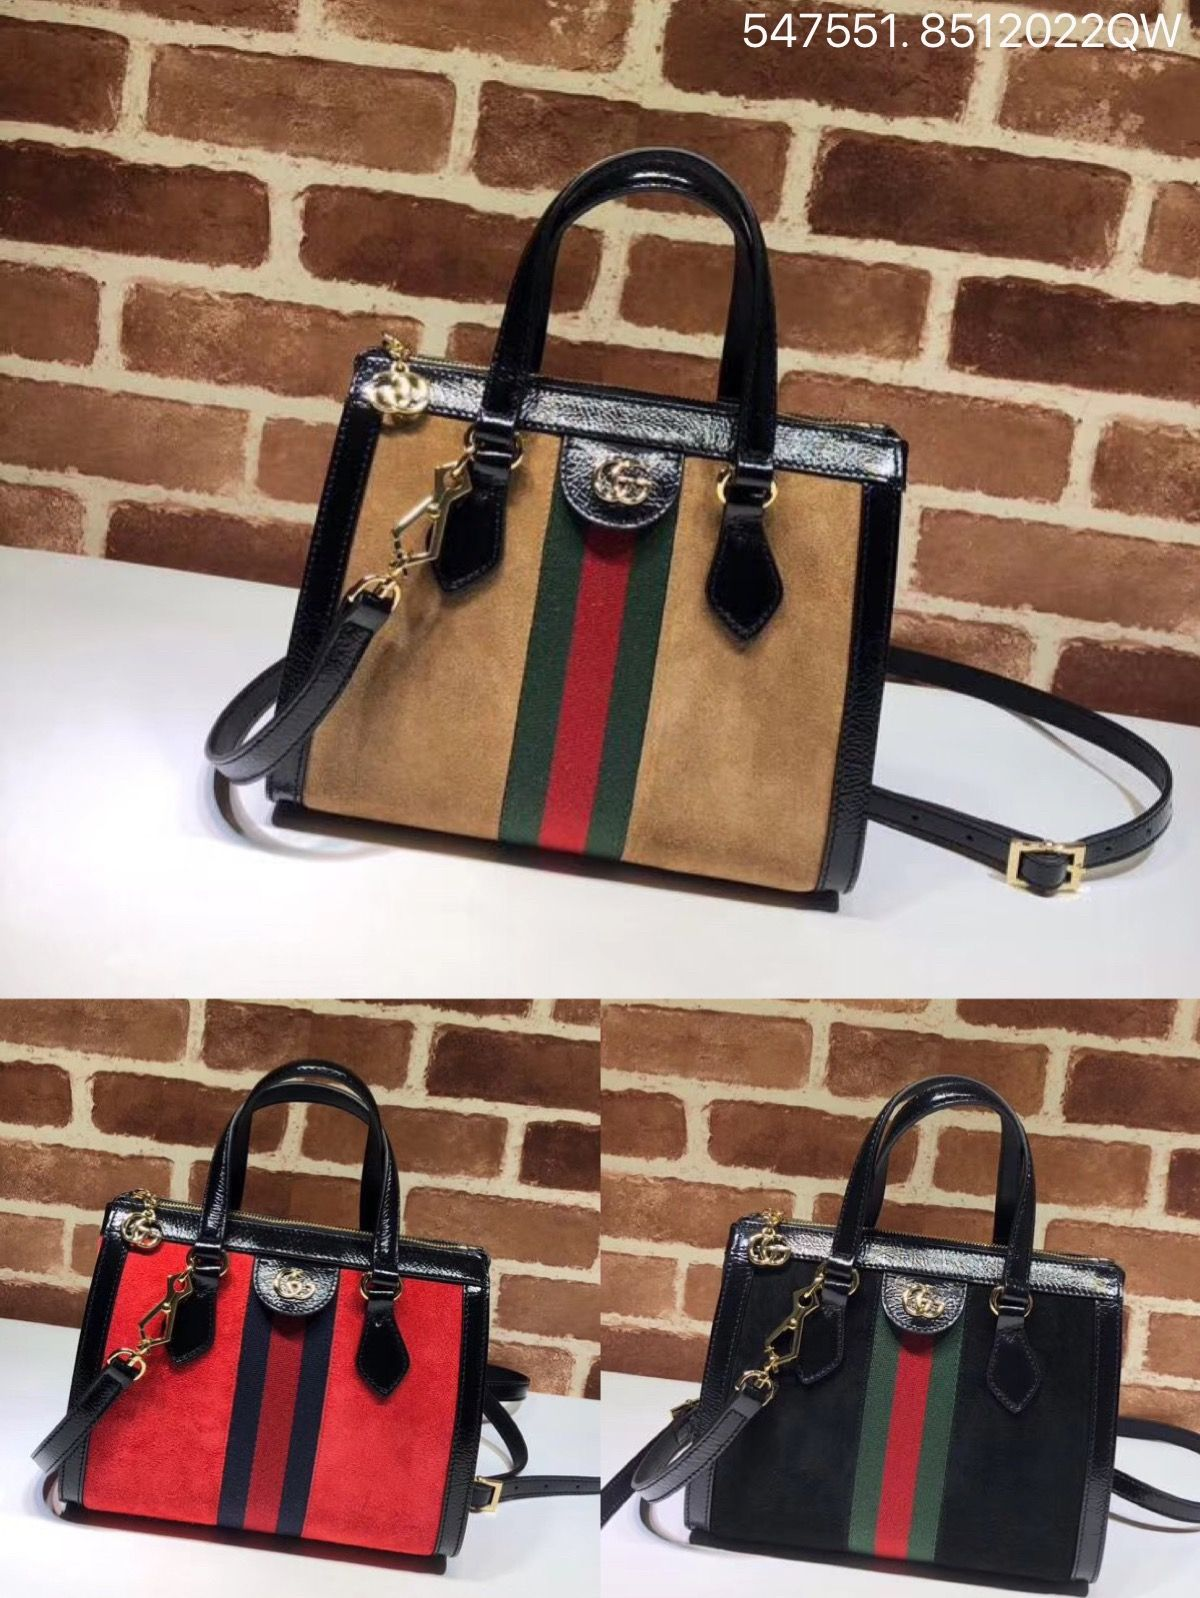 f6a4d4602139 Gucci ophidia small GG suede tote bag top handle handbag 547551 ...